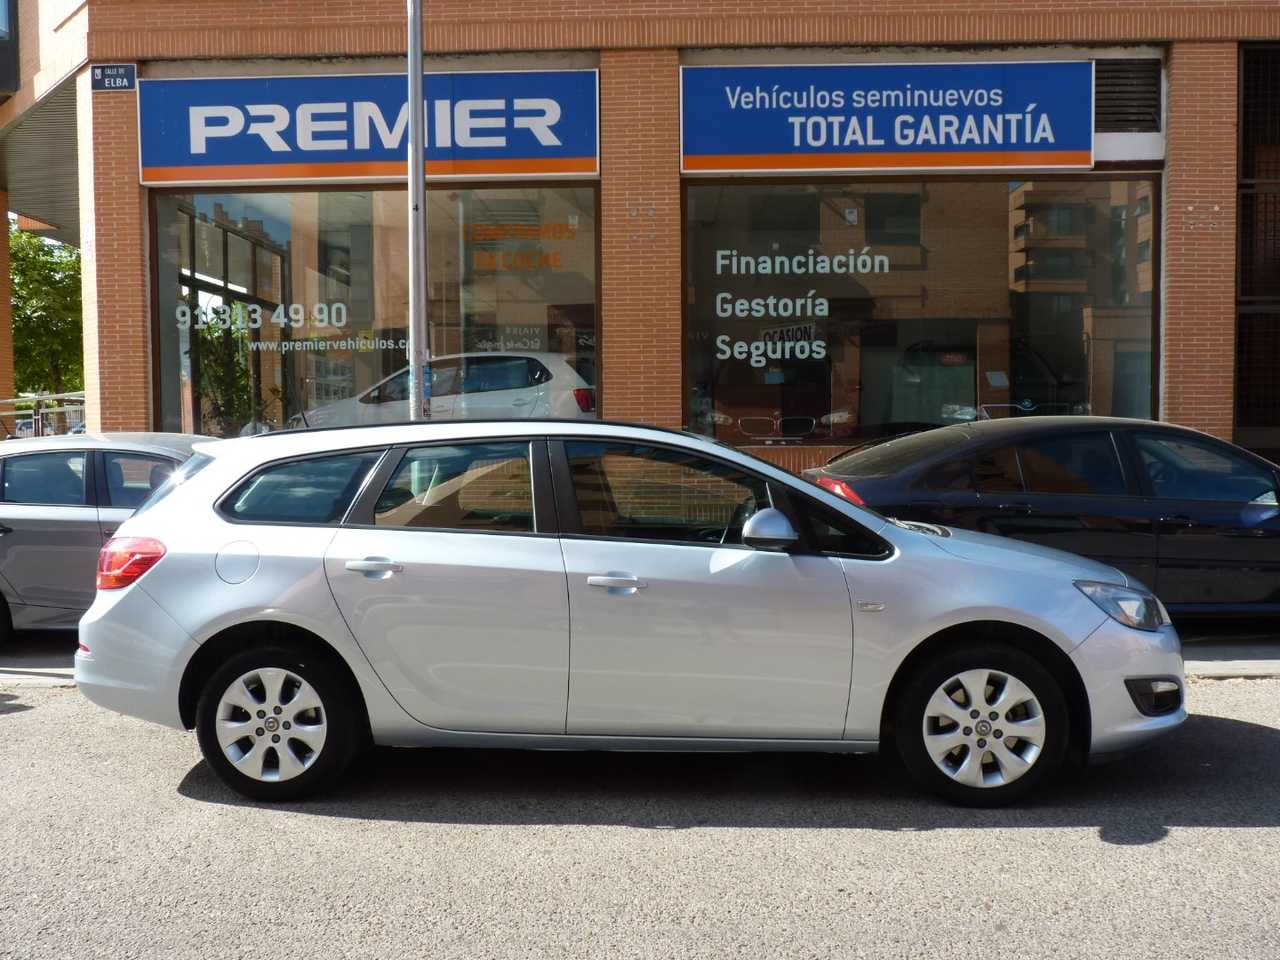 Opel Astra Sports Tourer  1.6 CDI BUSSINES  - Foto 1